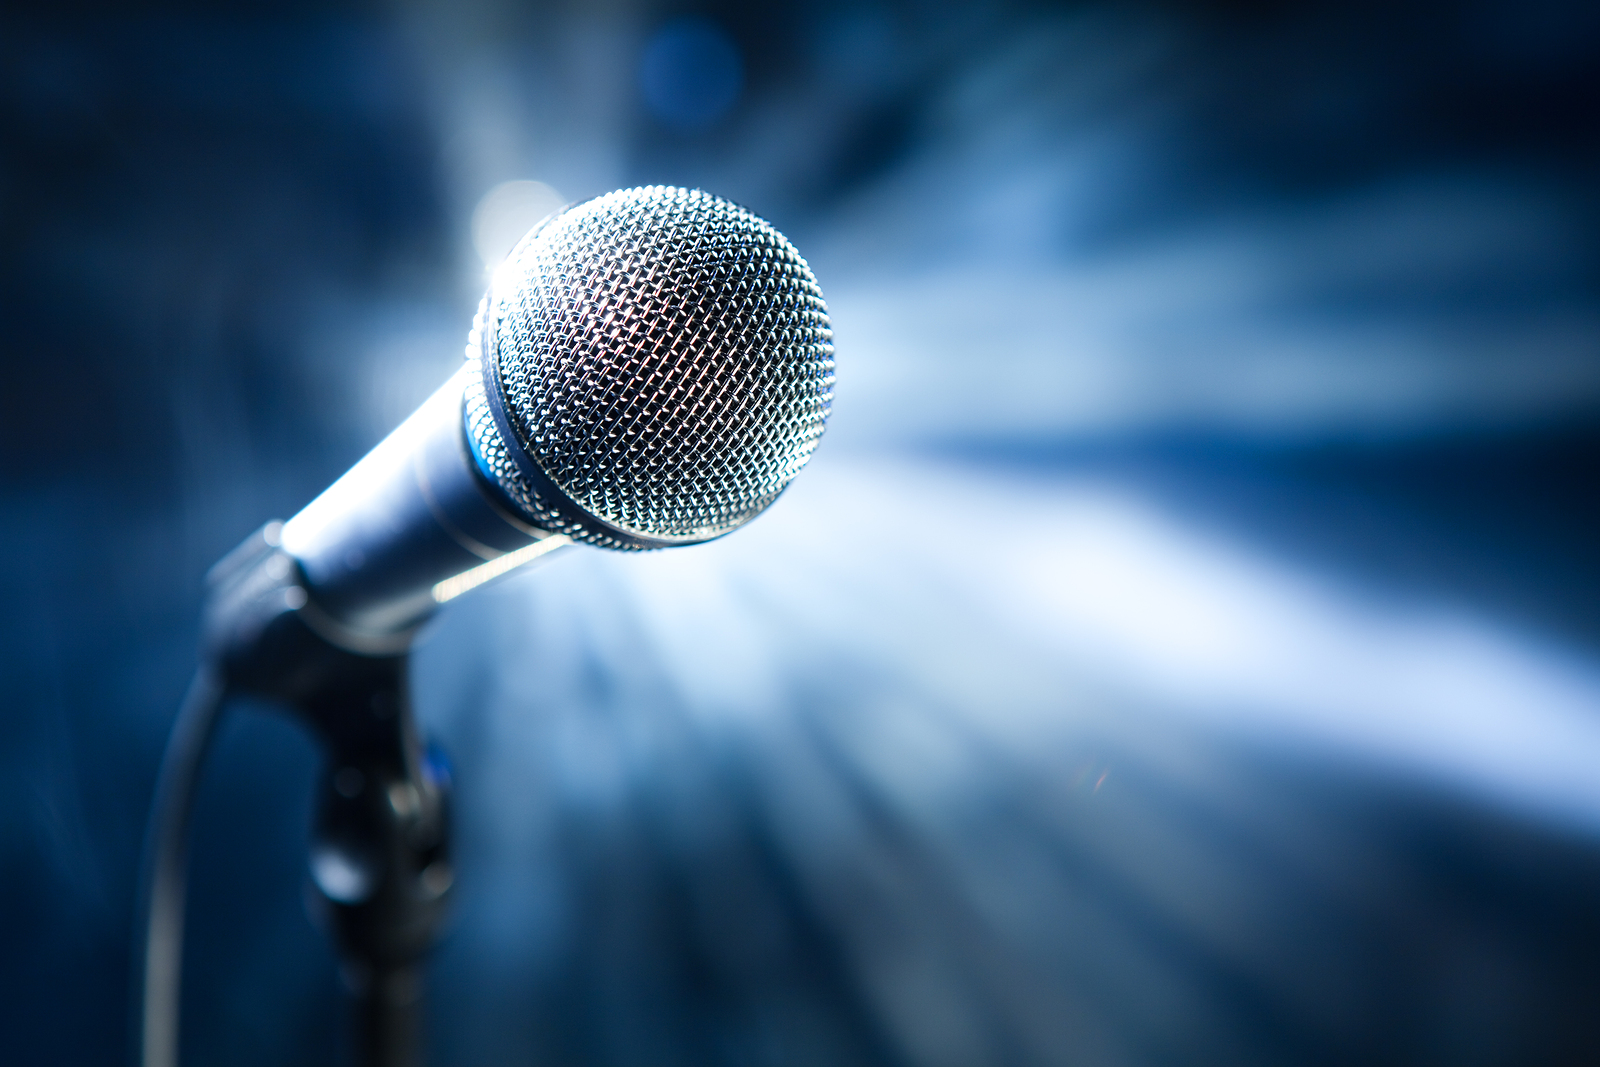 microphone-on-stage-26918468